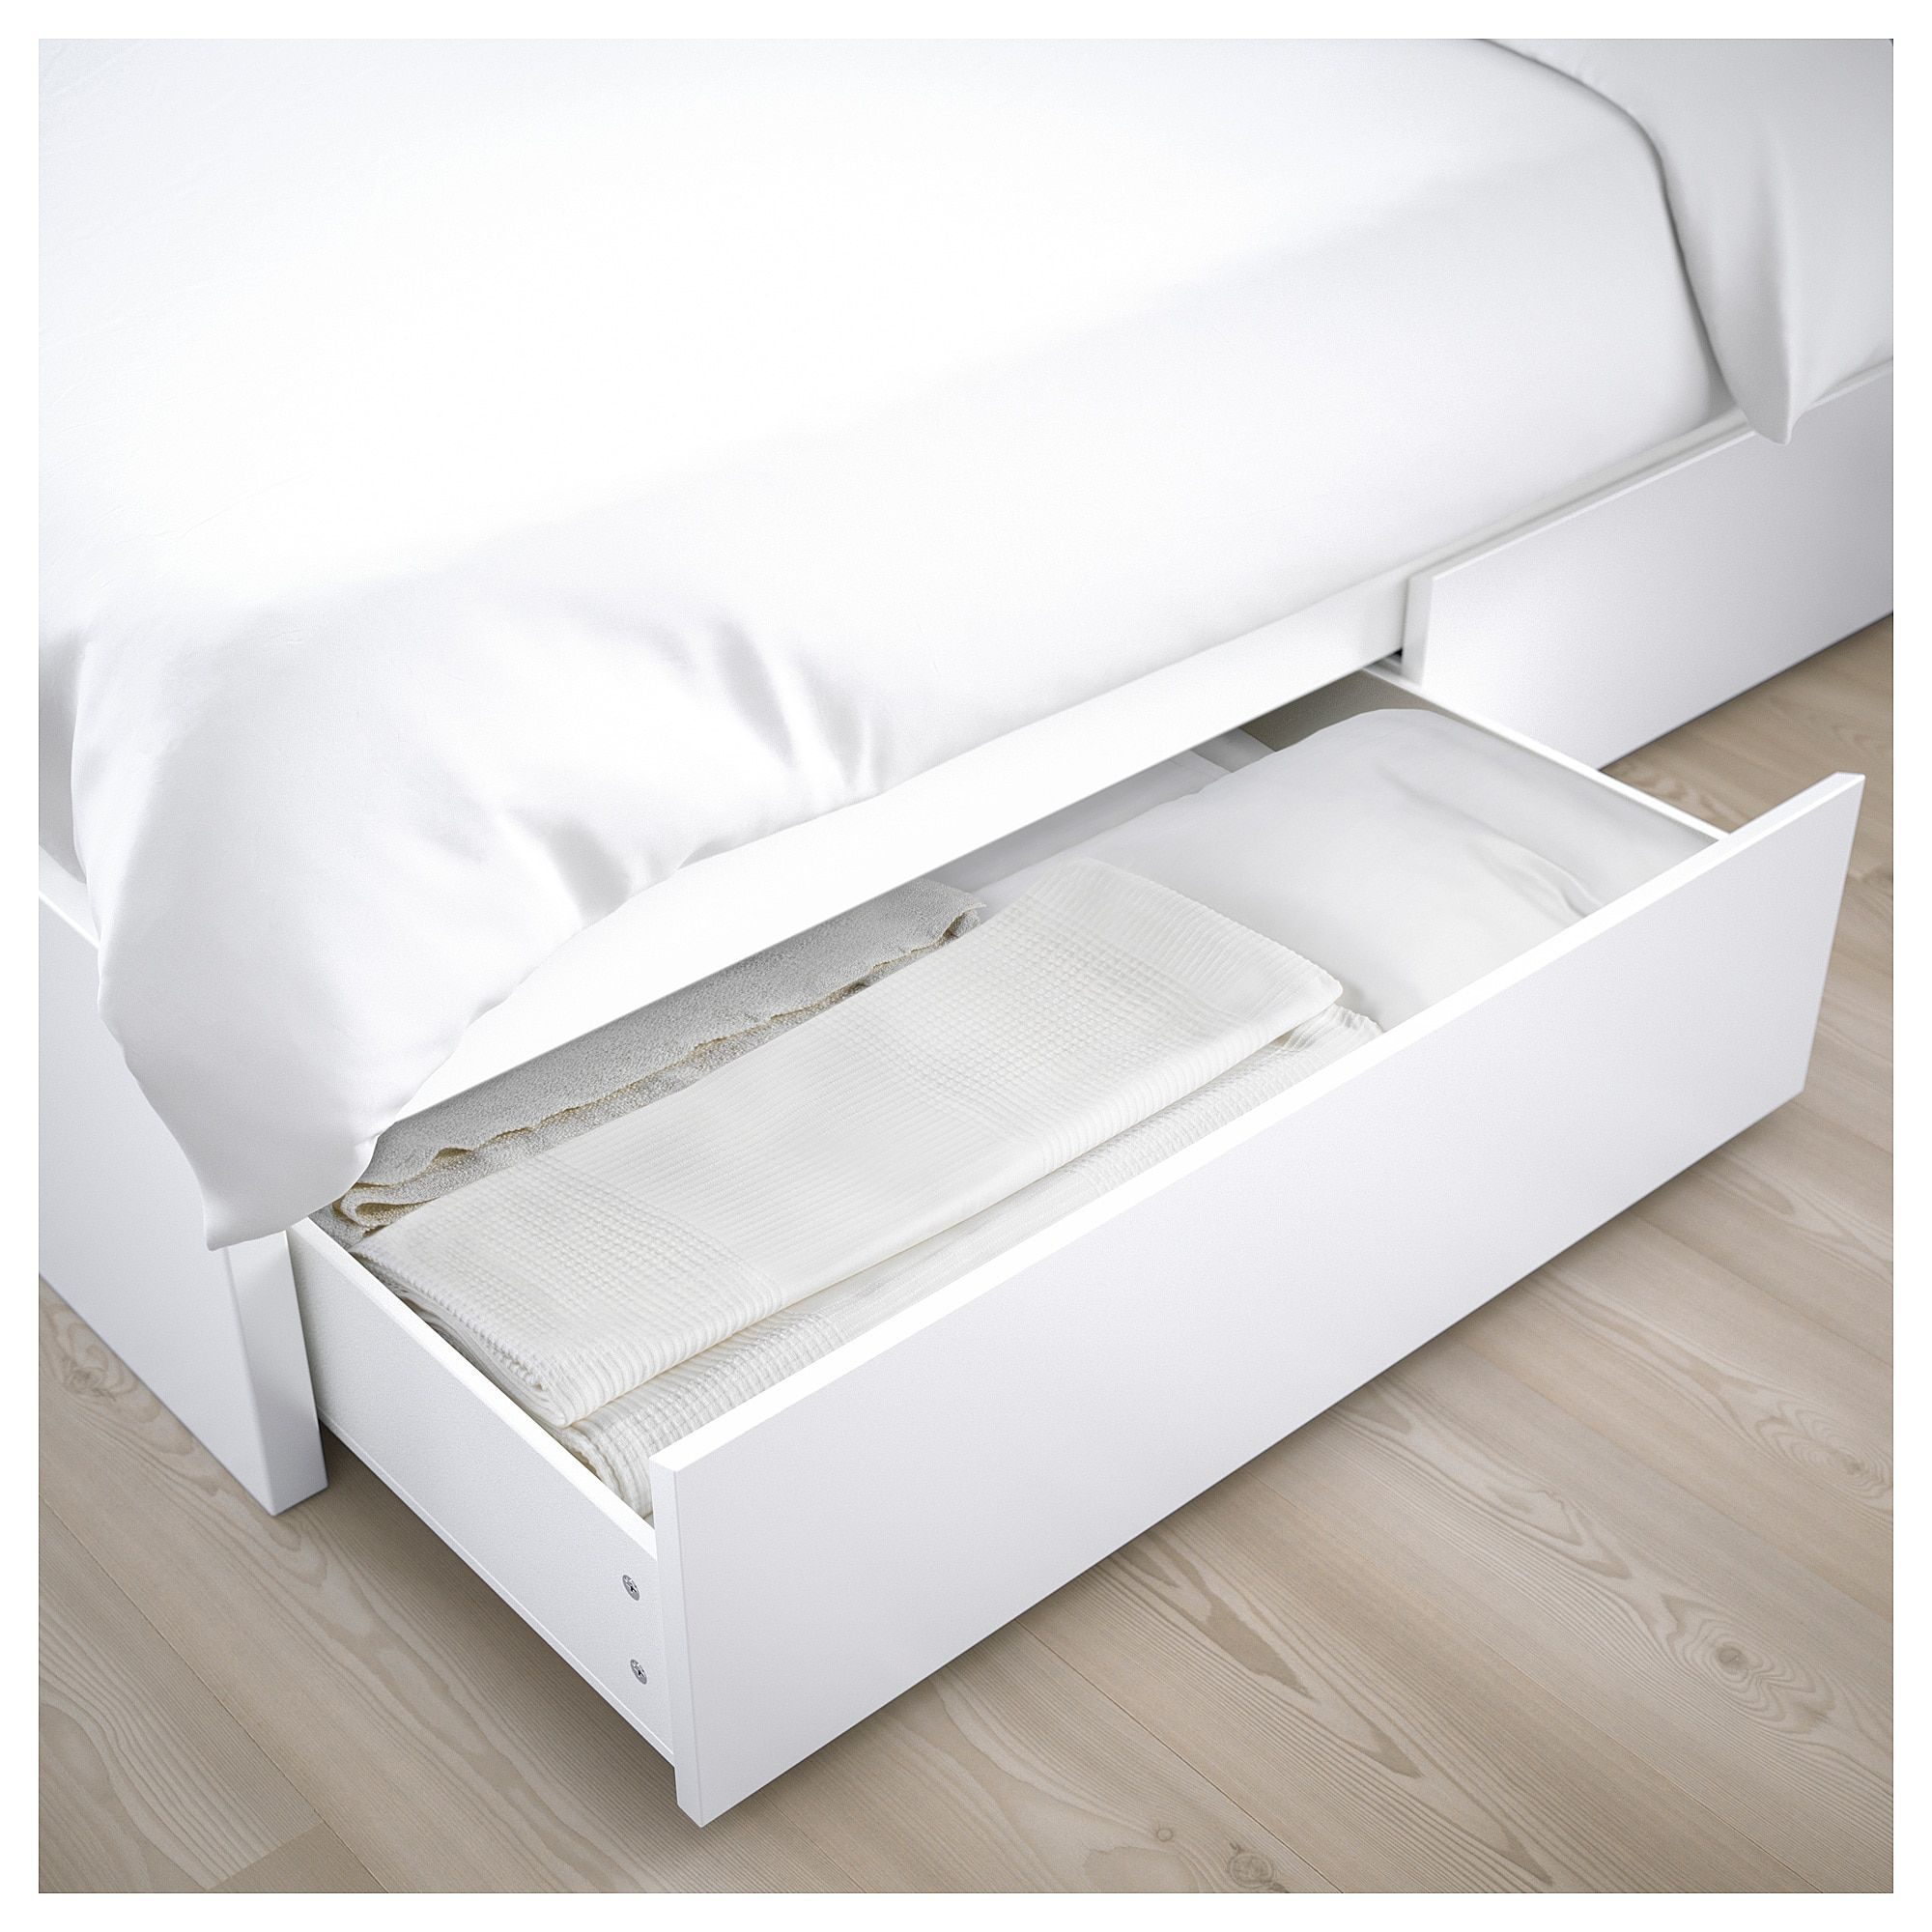 ikea malm high bed frame instructions